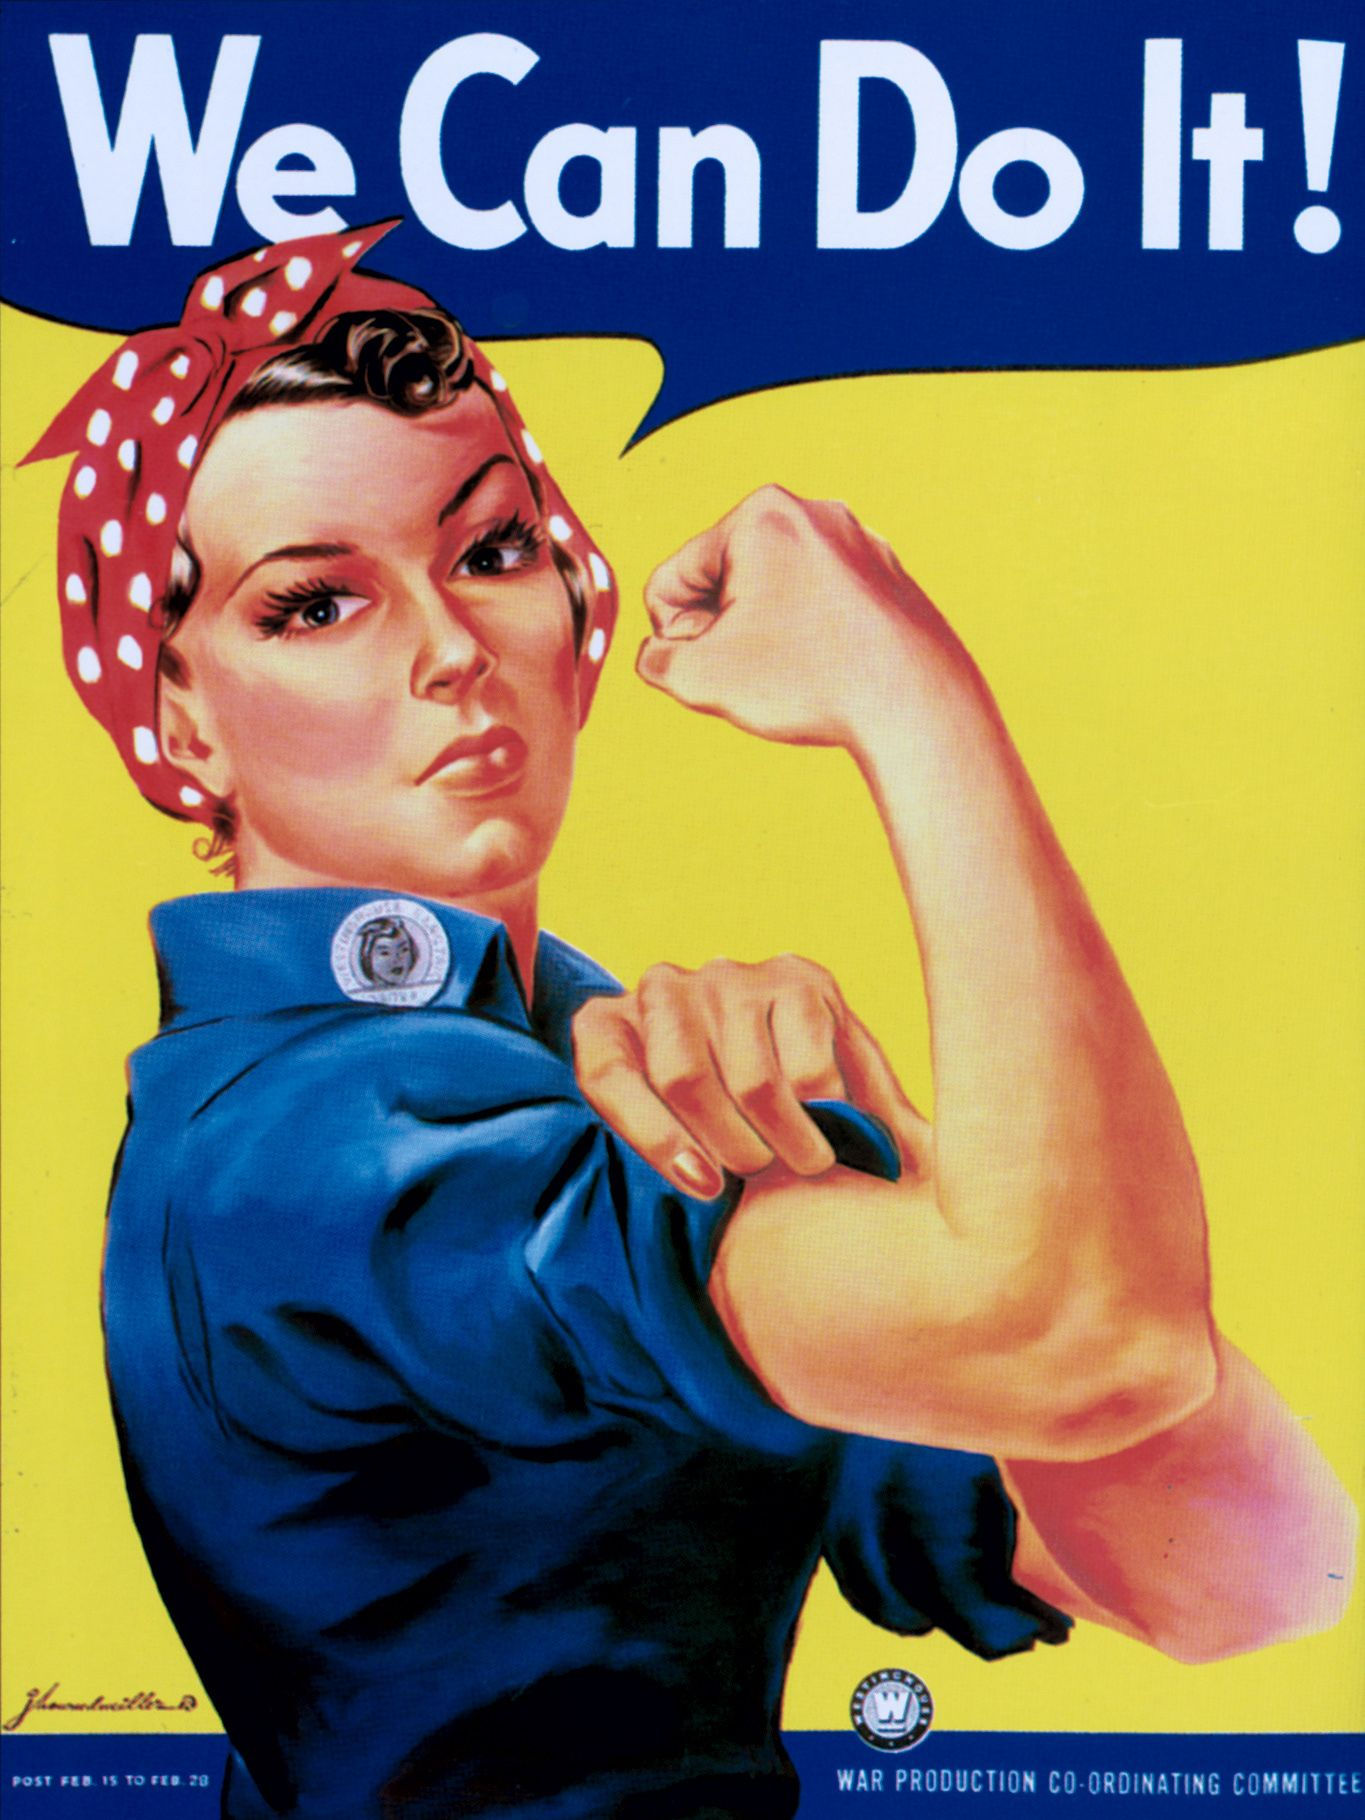 Google Image Result for http://www.adcouncil.org/var/ezflow_site/storage/images/media/adcouncil/images/classics/rosie-the-riveter/14380-1-eng-US/Rosie-the-Riveter.jpg